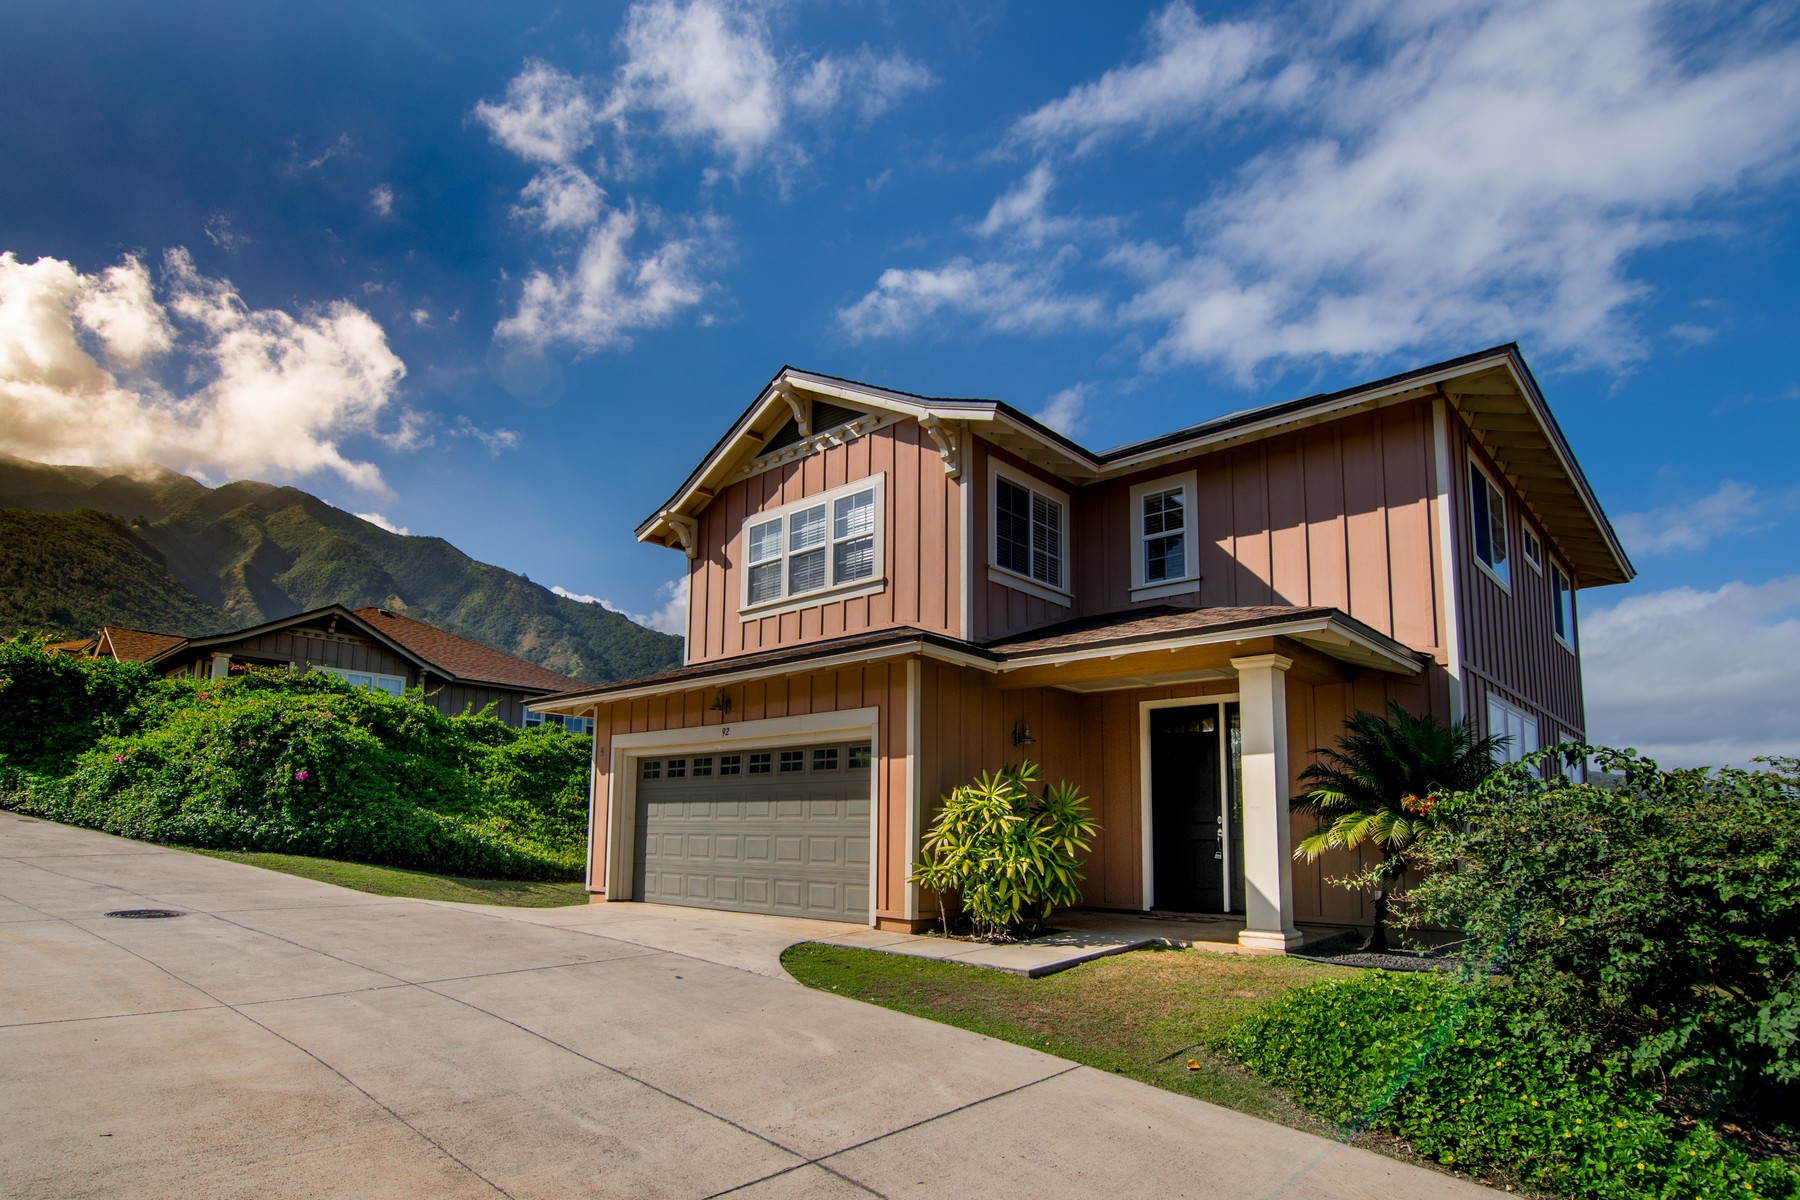 Casa Unifamiliar por un Venta en The Cottages at Kehalani On The Slopes of The West Maui Mountains-Waikapu 92 Maka Hou Loop Wailuku, Hawaii, 96793 Estados Unidos